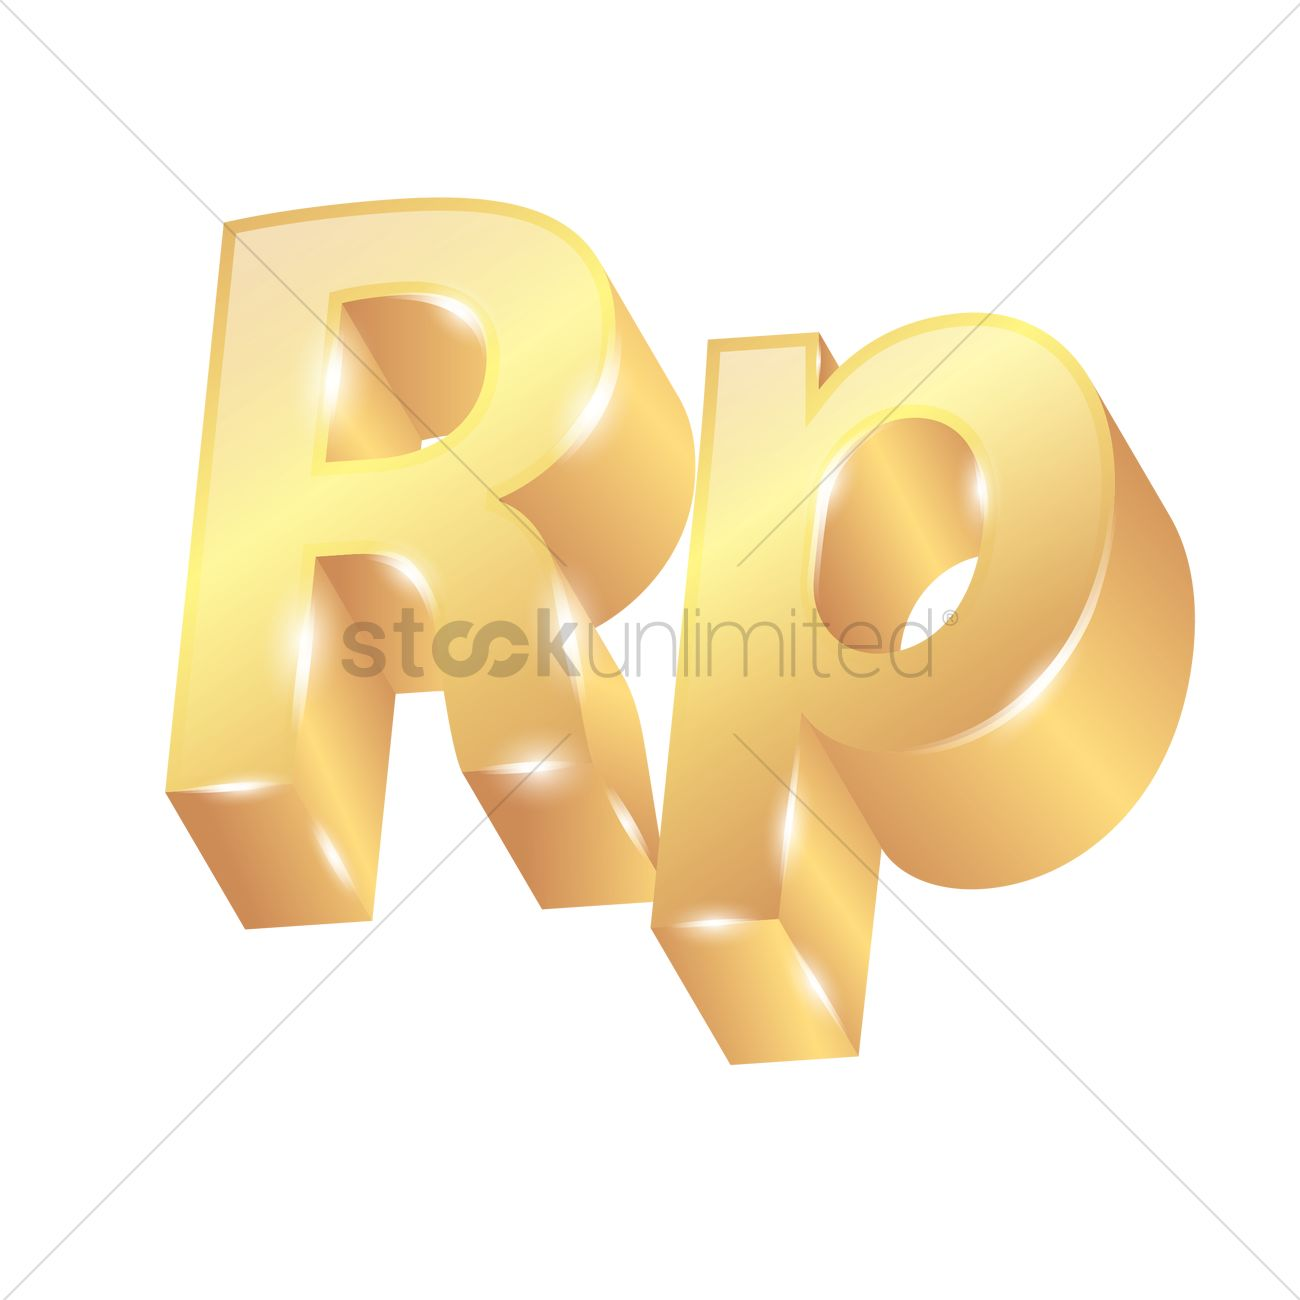 3d Rupiah Currency Symbol Vector Image 1828074 Stockunlimited